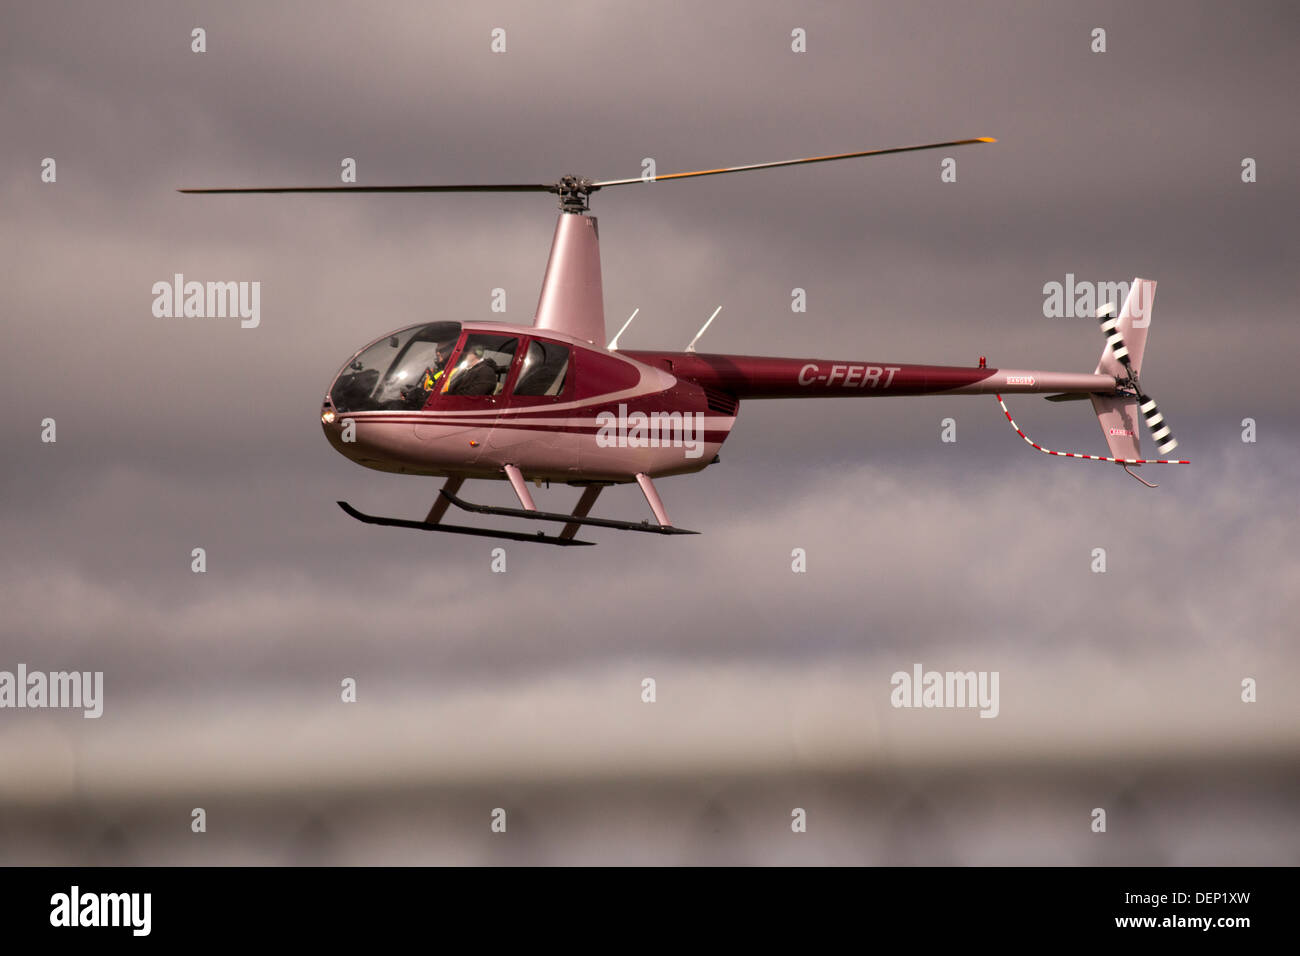 Red and White helicopter in sky flying passengers - Stock Image